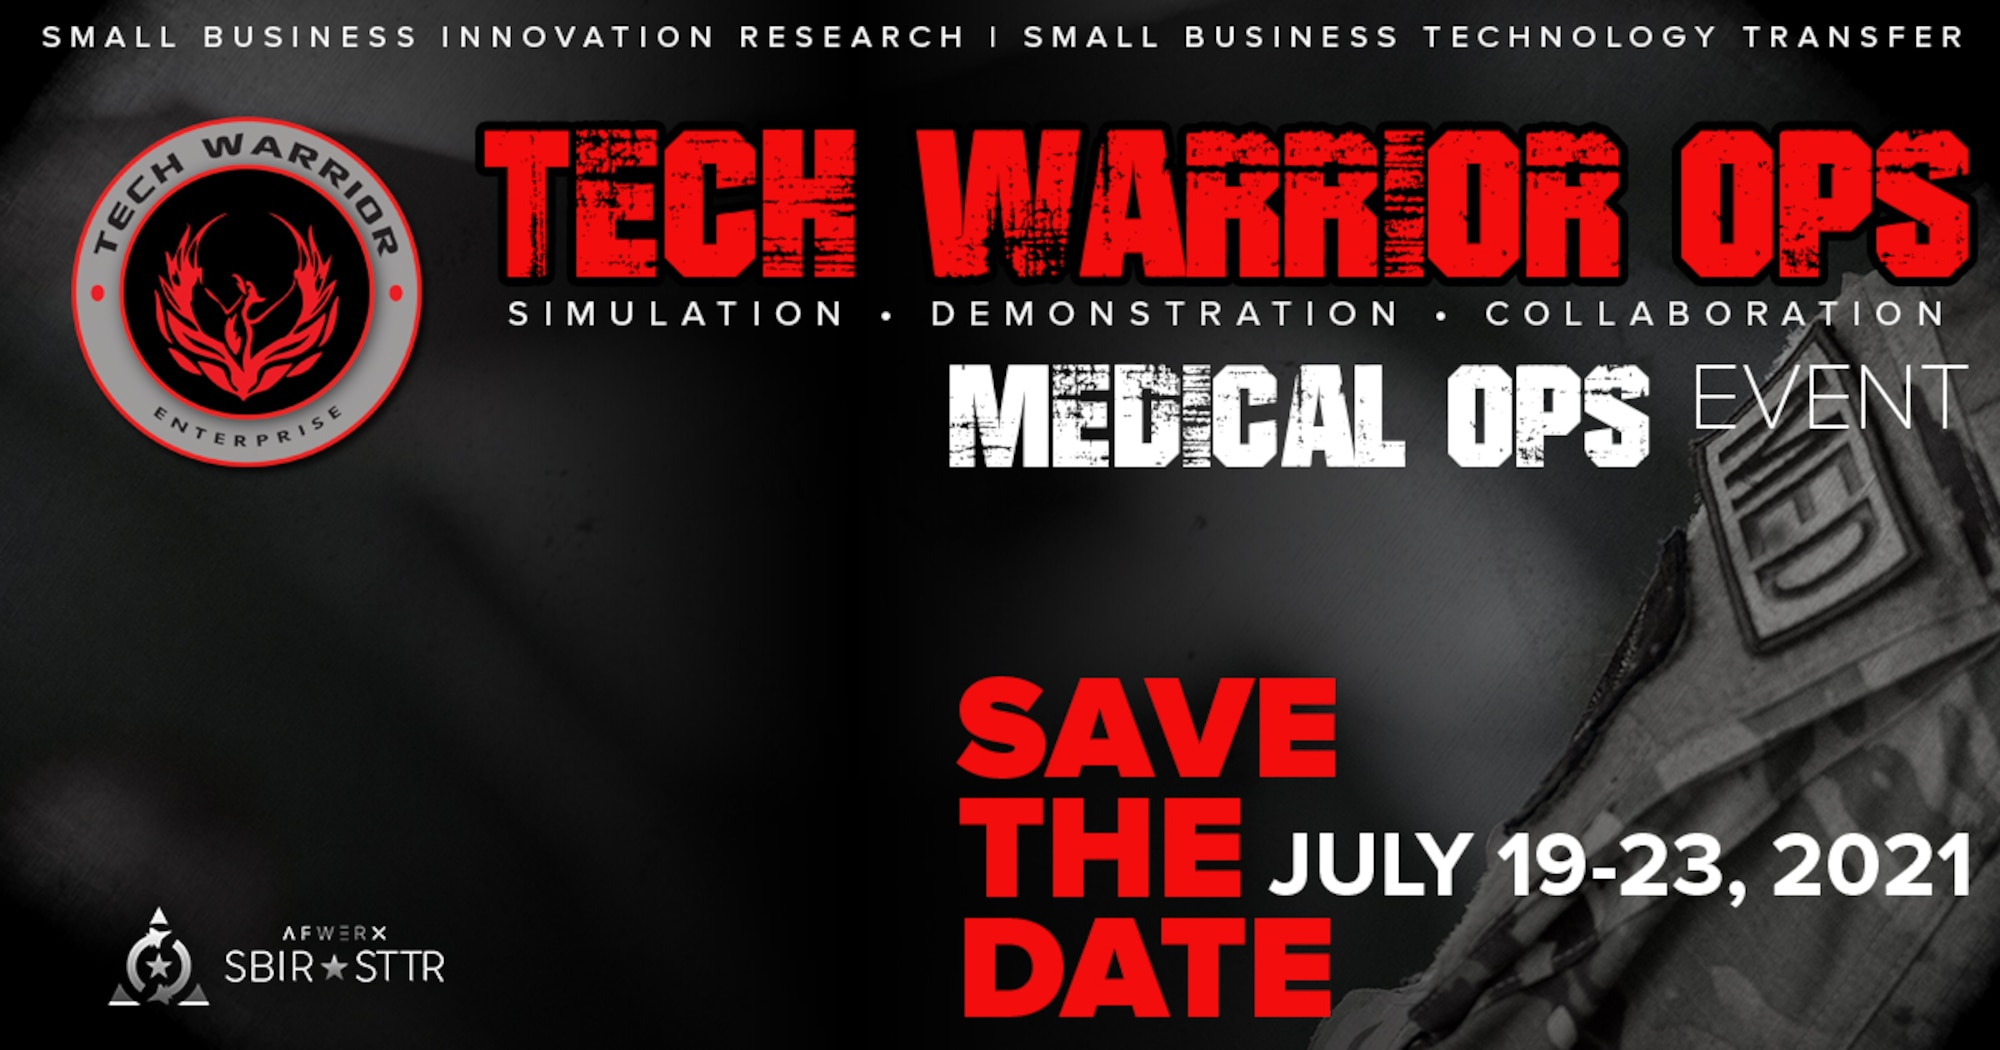 Join the Tech Warrior Enterprise team for the virtual Tech Warrior Medical OPS event scheduled for July 19-23, 2021. Government tech scouts, industry subject matter experts, and many small businesses will be in attendance.